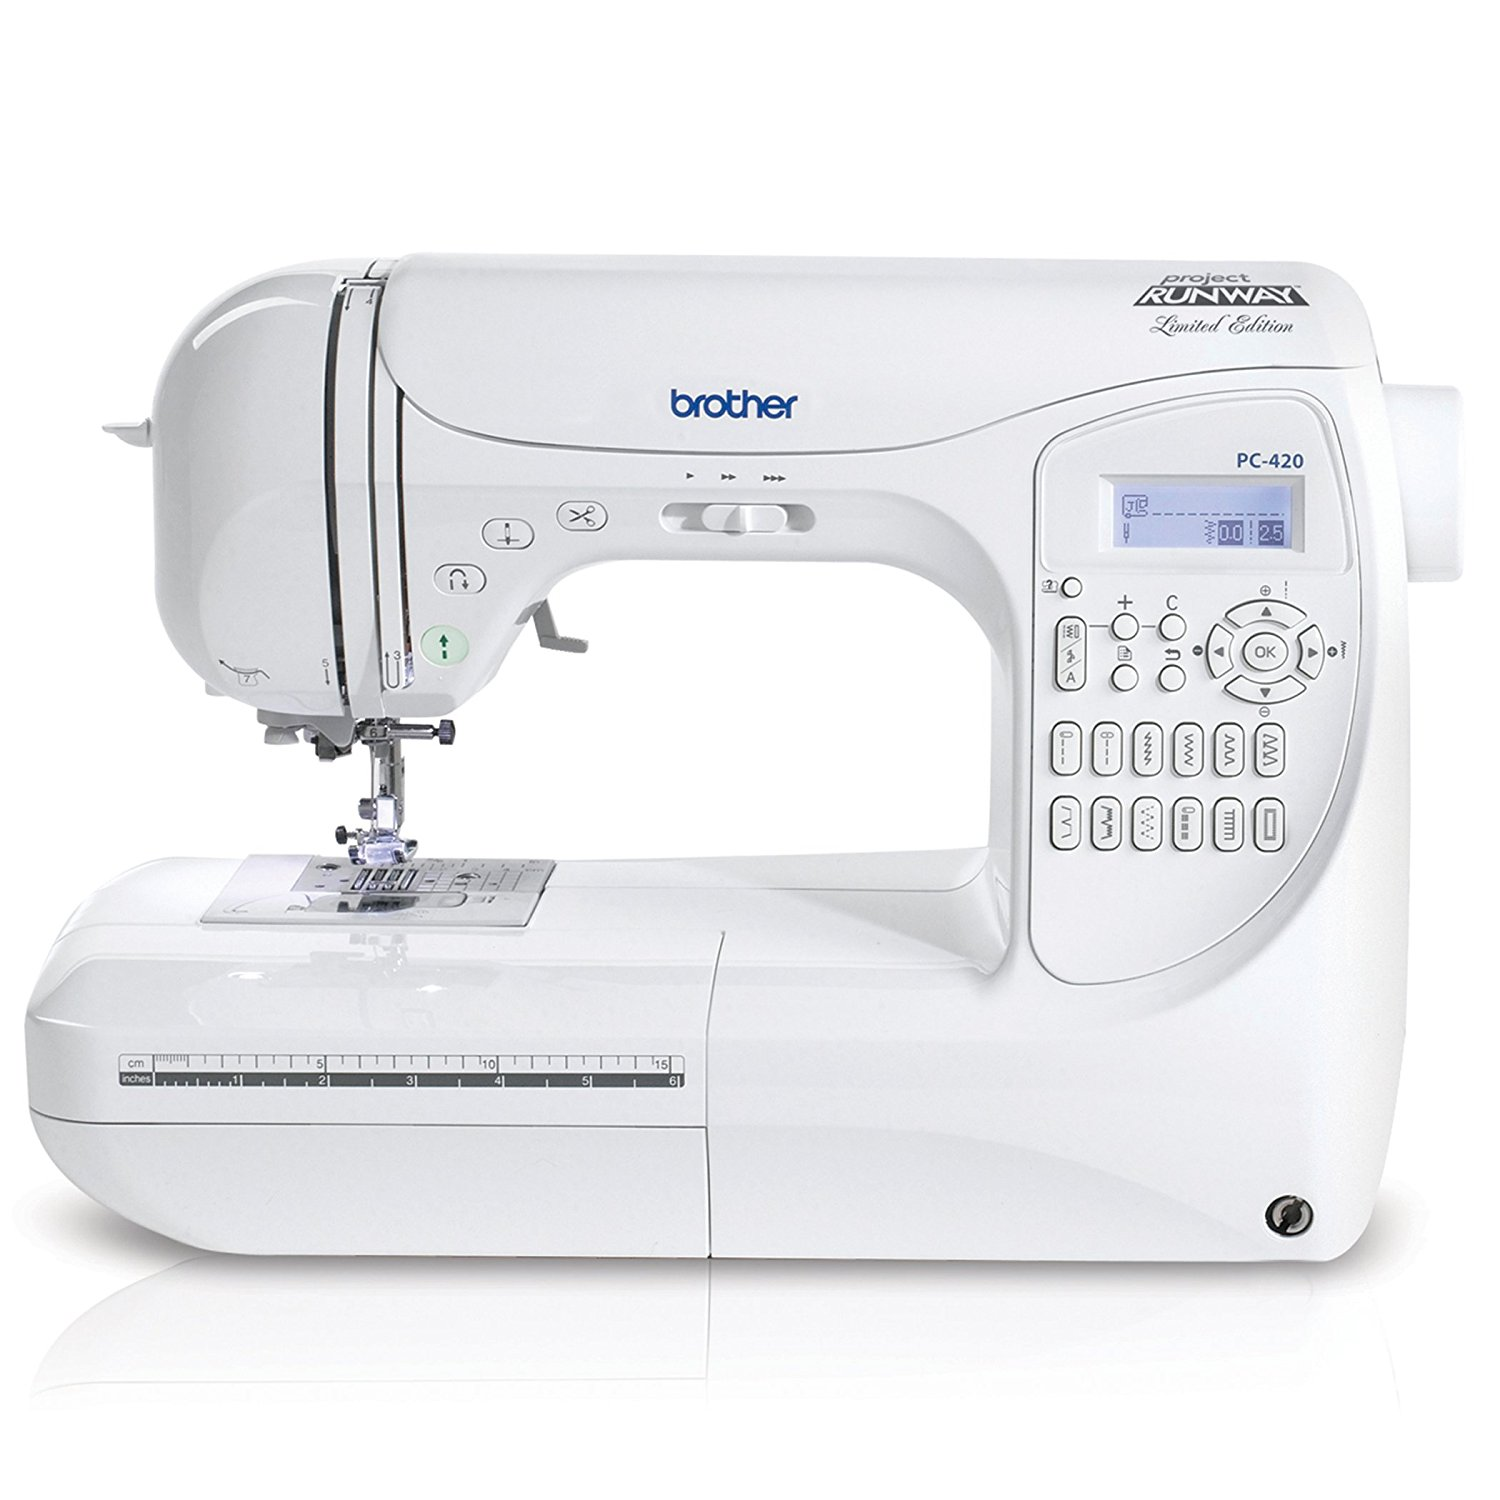 Janome 2212 Sewing Machine August 2017